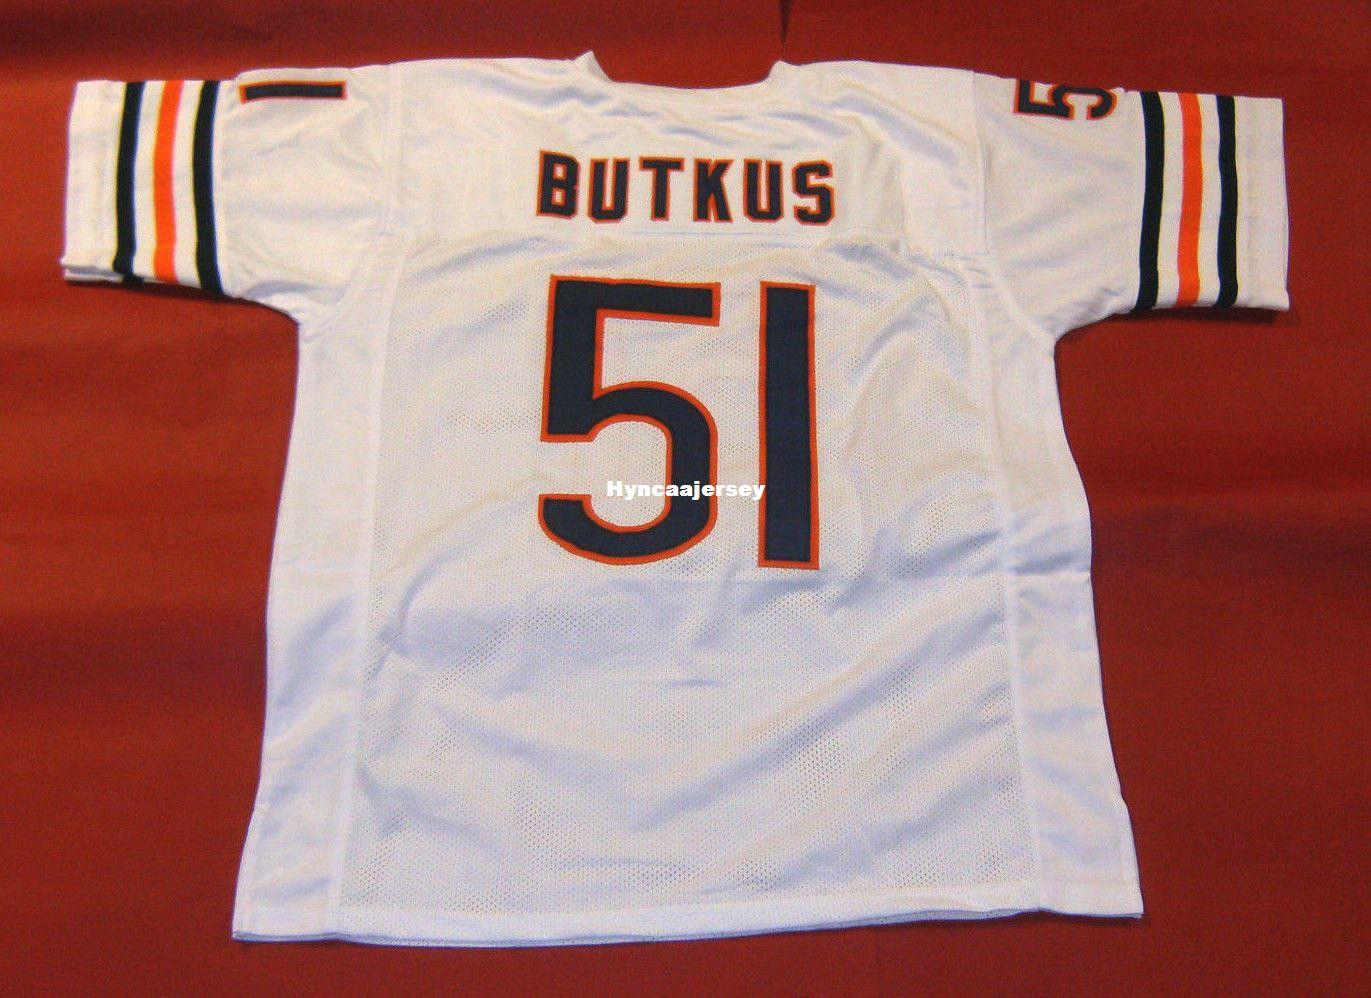 264466e54 2019 Cheap Retro  51 DICK BUTKUS CUSTOM MITCHELL   NESS Jersey White Mens  Stitching High End Size S 5XL Football Jerseys College NCAA From  Hyncaajersey